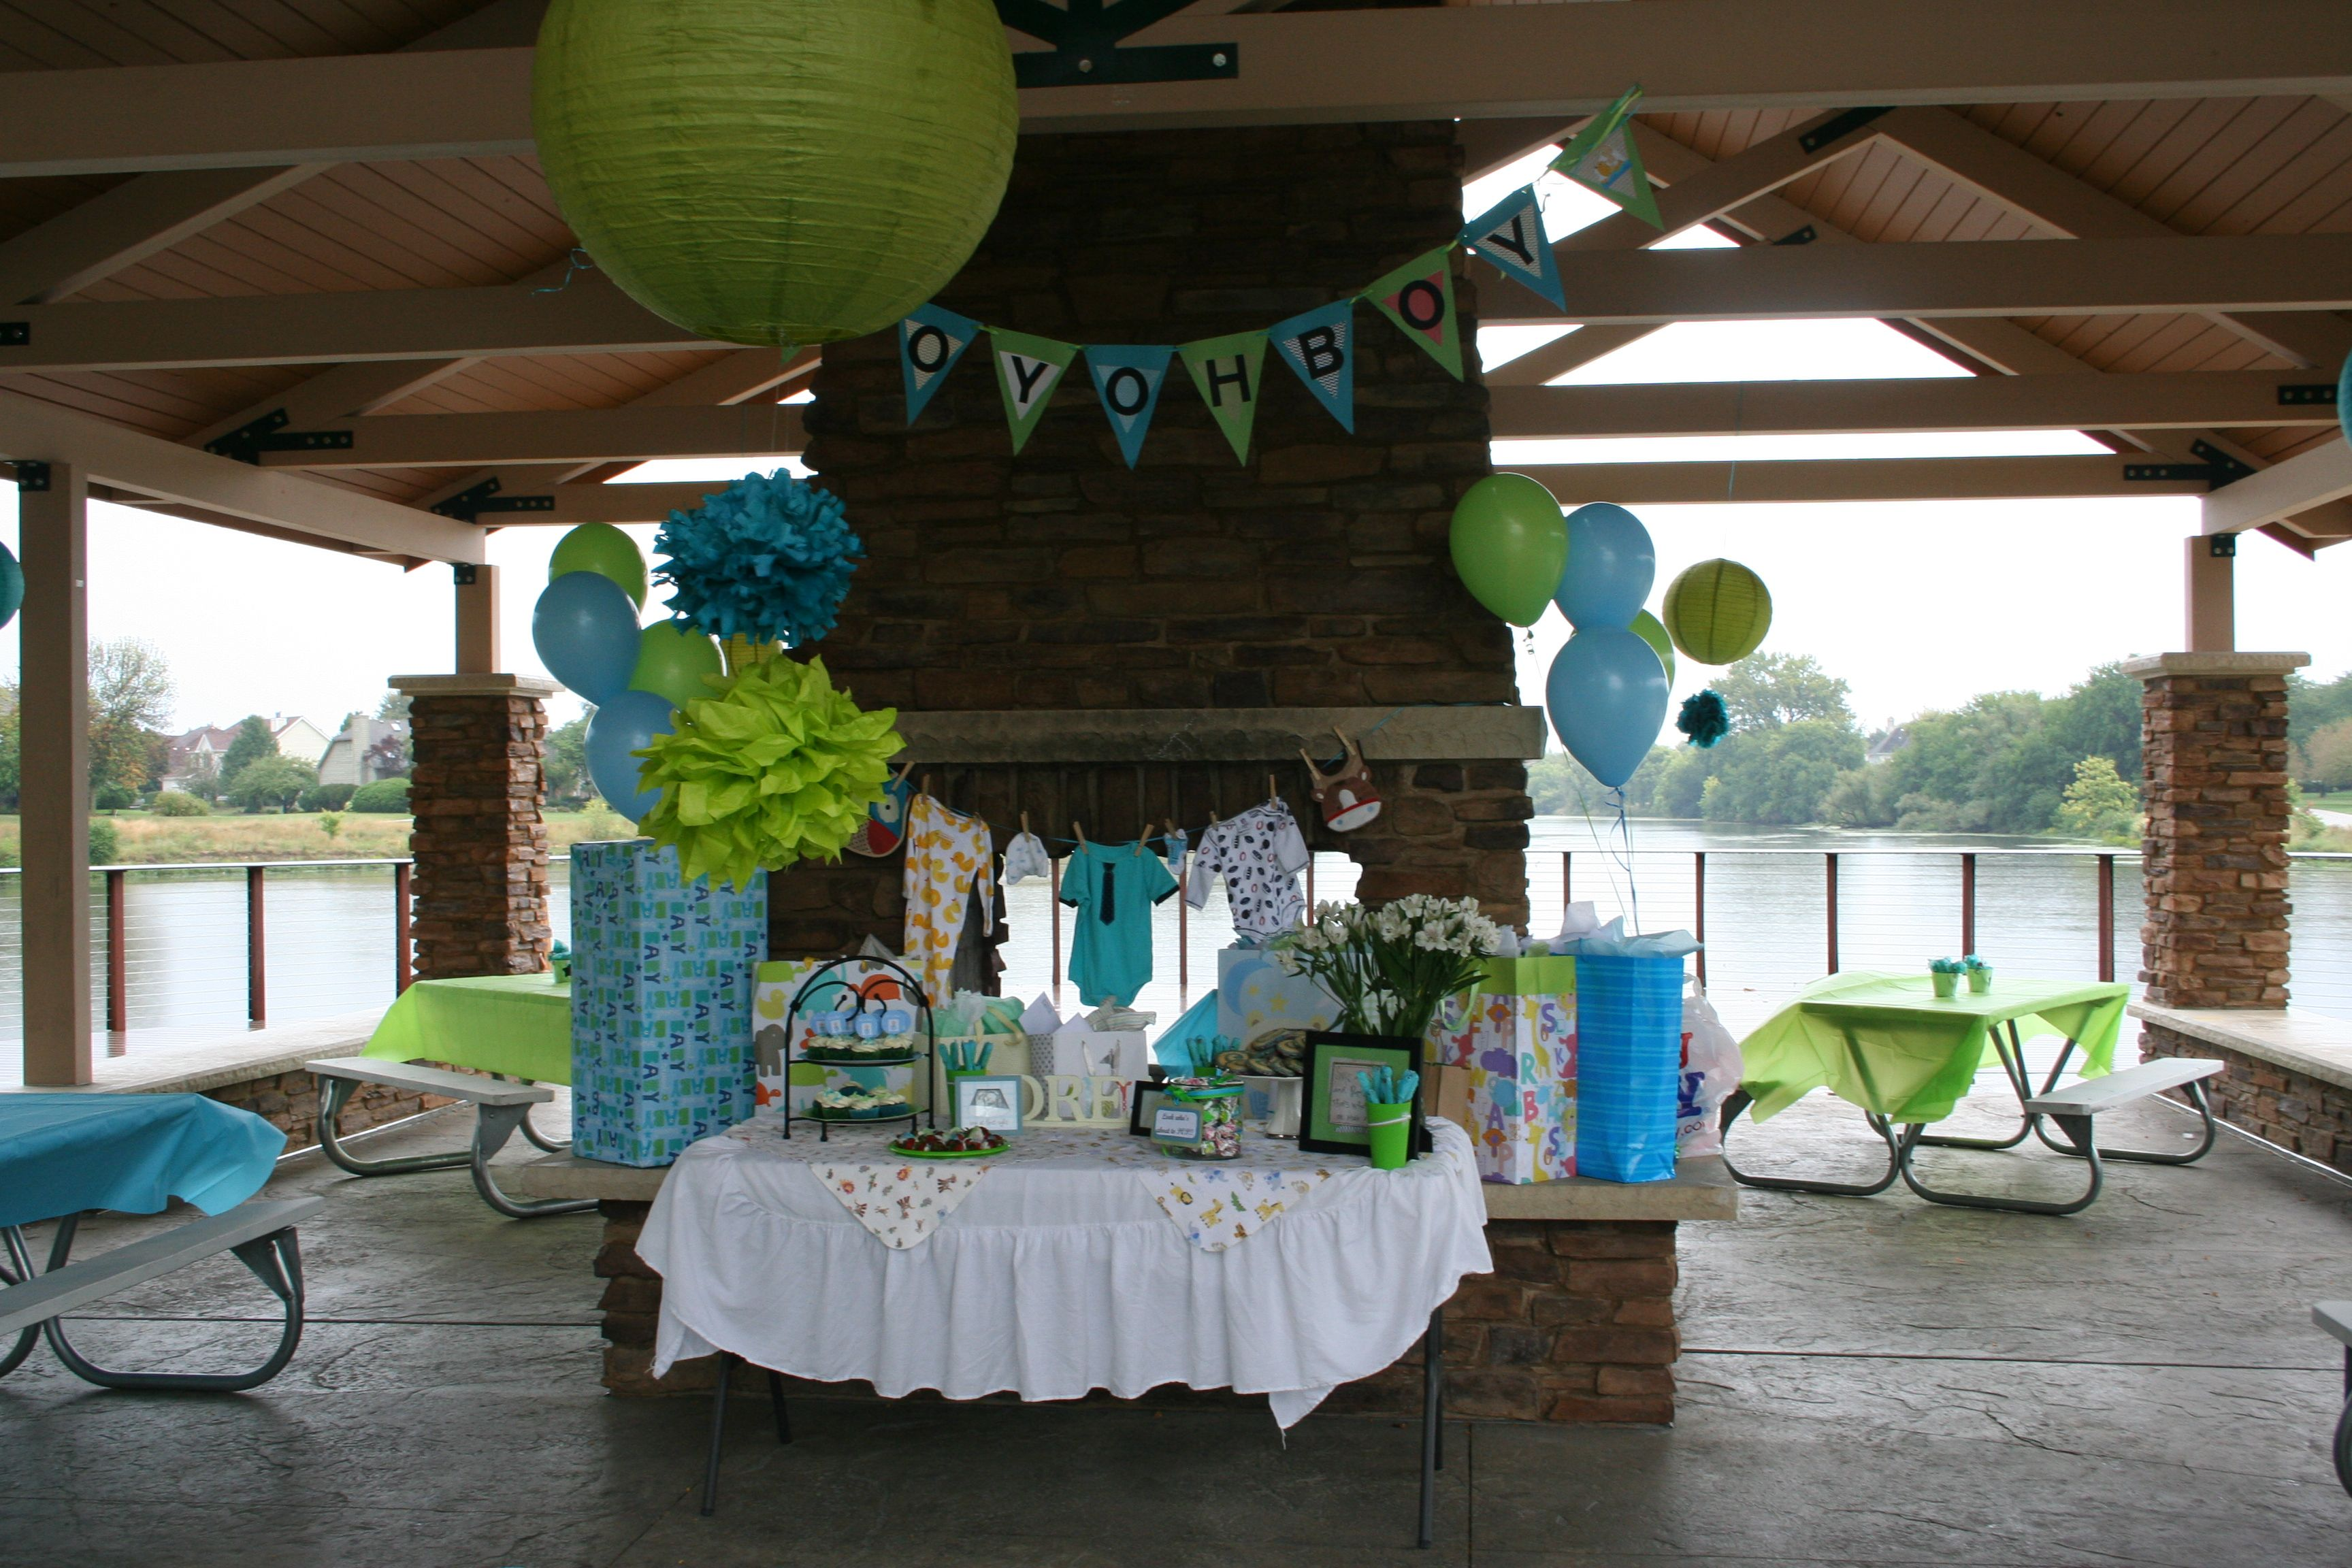 Decorations For A Fun Outside: I Like The Cute Decorations, And The Splash Of A Few Diff